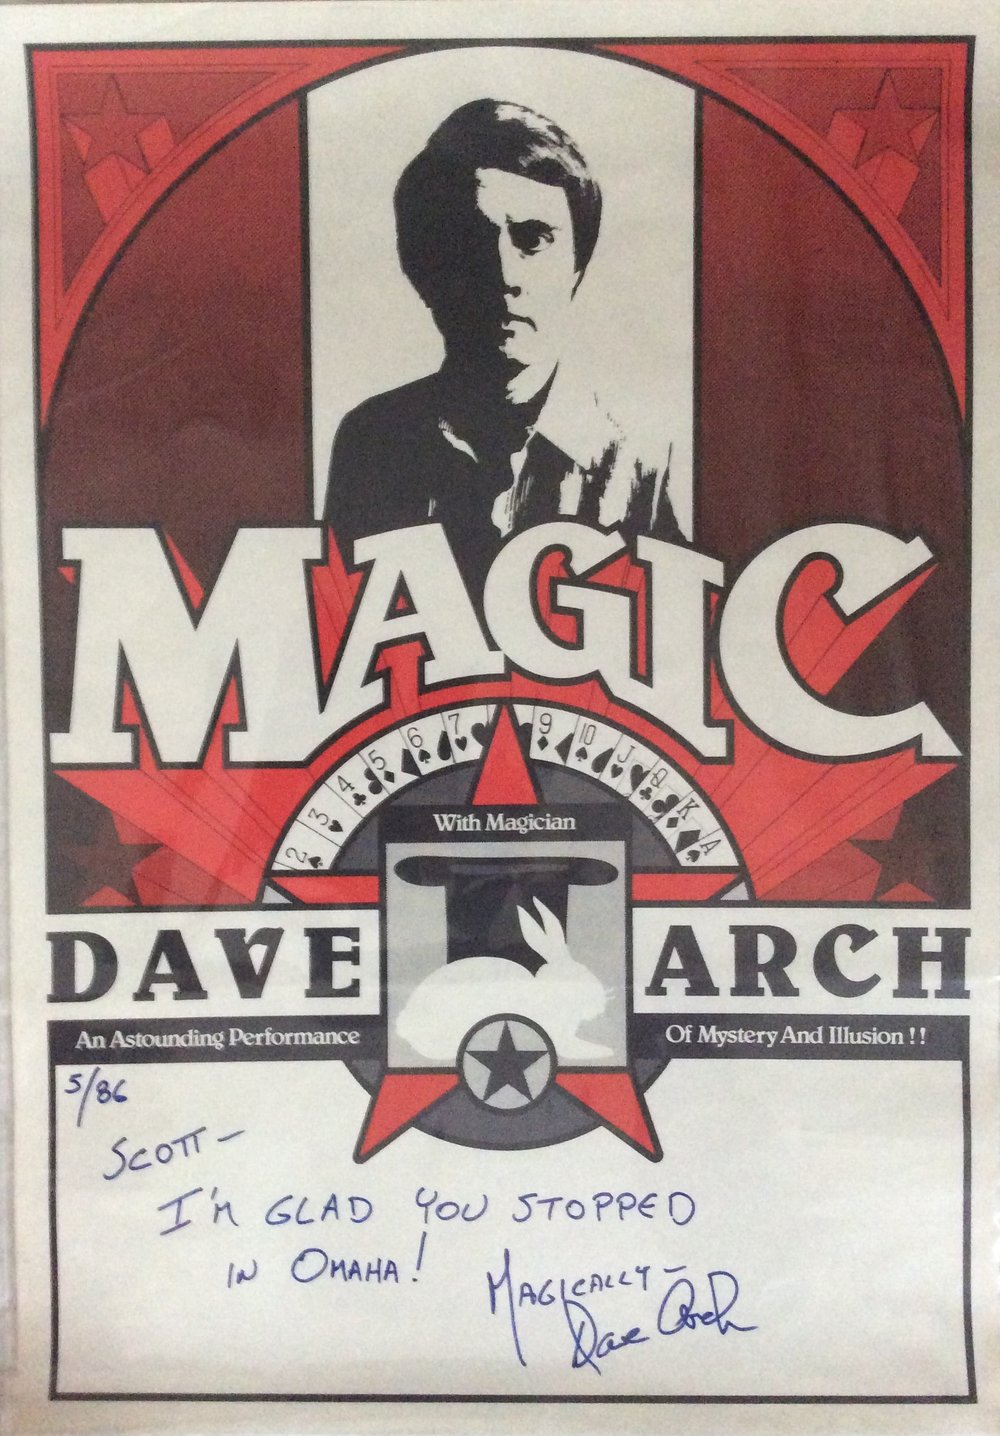 Vintage Dave Arch poster from 1980's